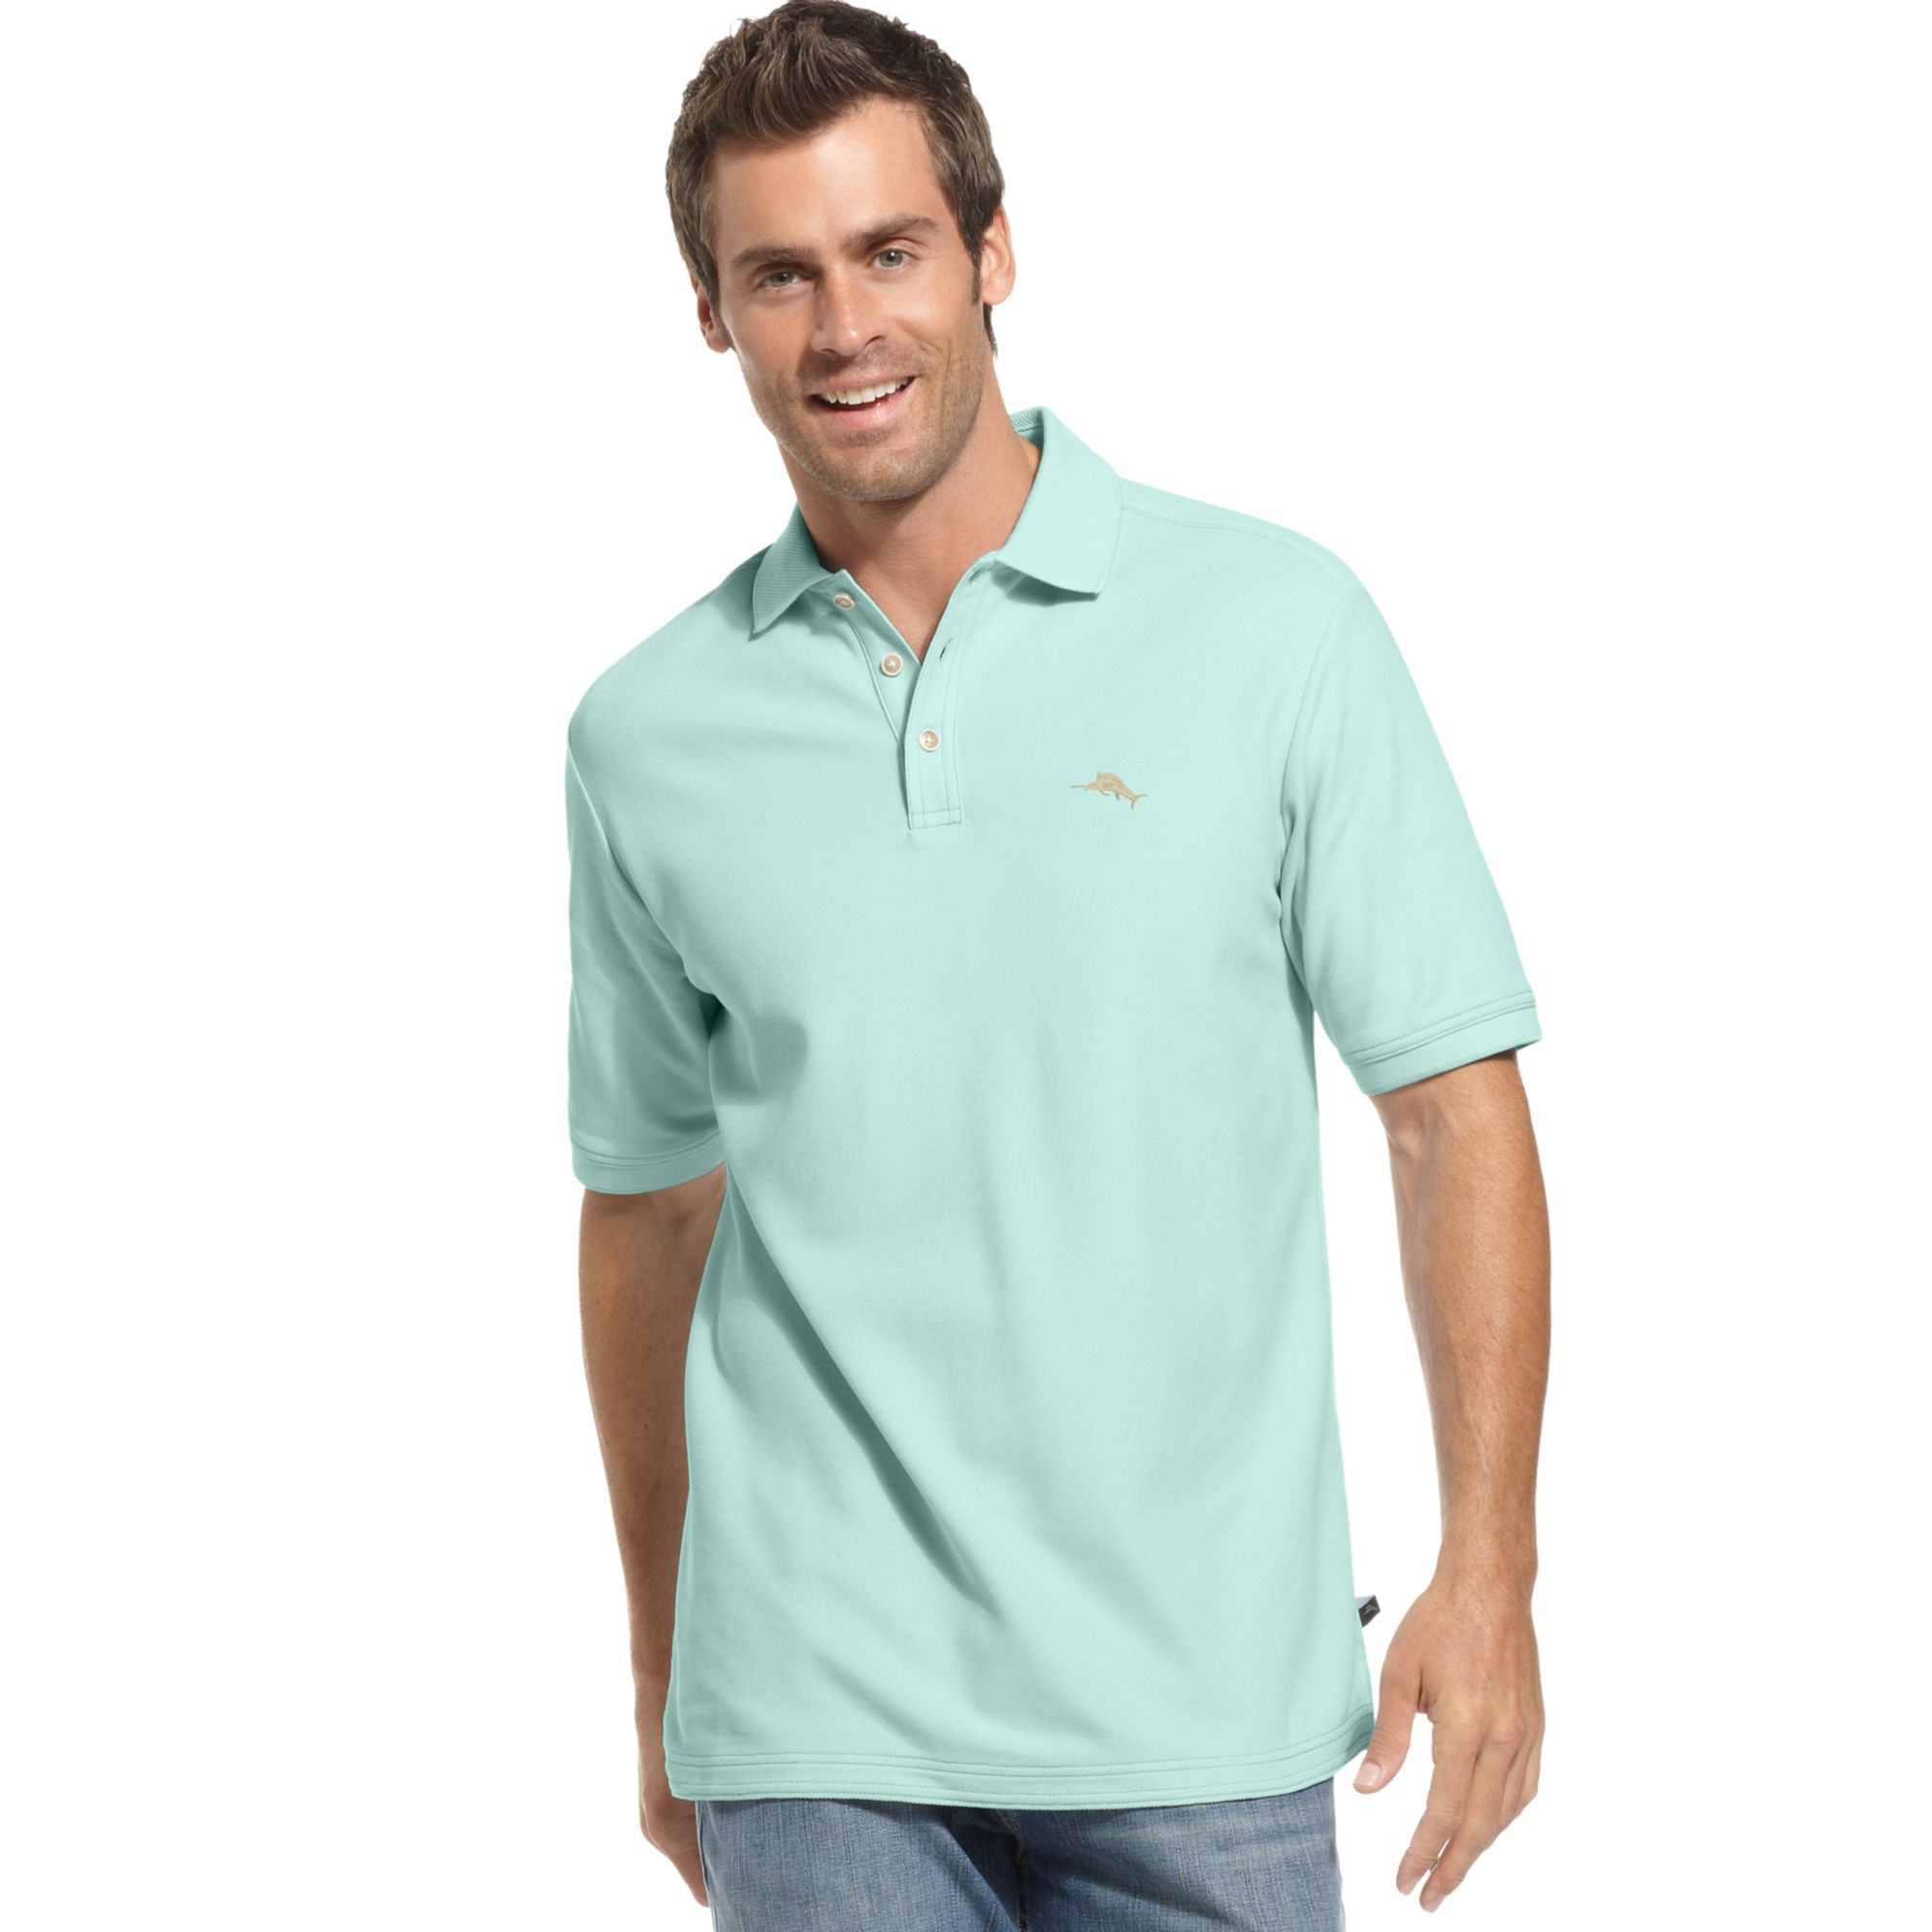 Tommy bahama emfielder polo shirt in green for men icicle for Tommy bahama christmas shirt 2014